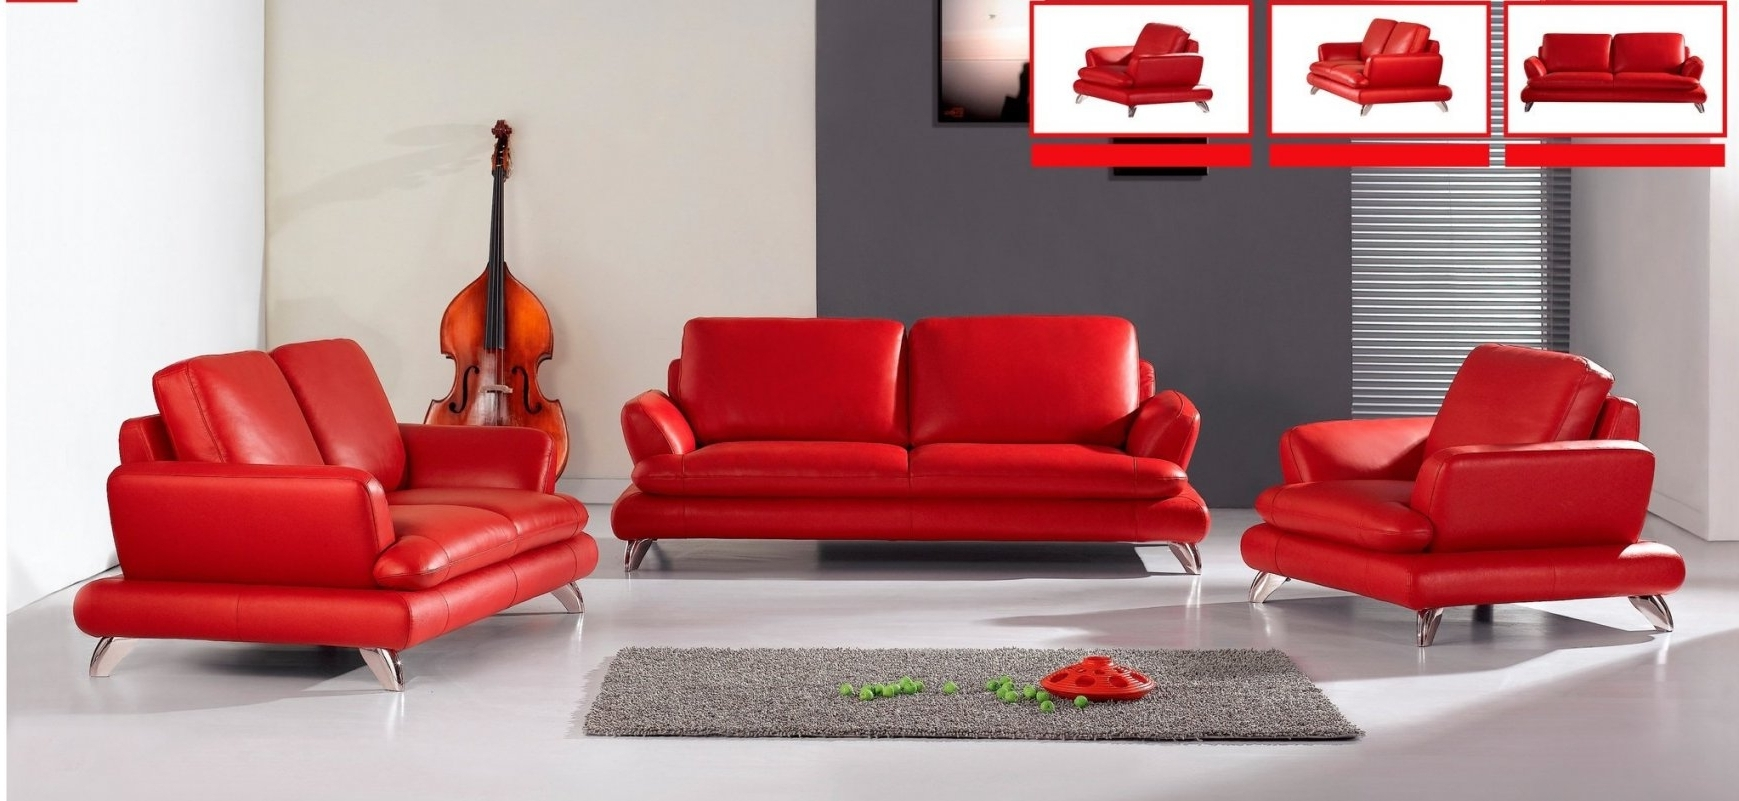 Best And Newest Red Leather Sofas Throughout Contemporary Red Leather Sofa 66 For Living Room Sofa Regarding (View 13 of 20)